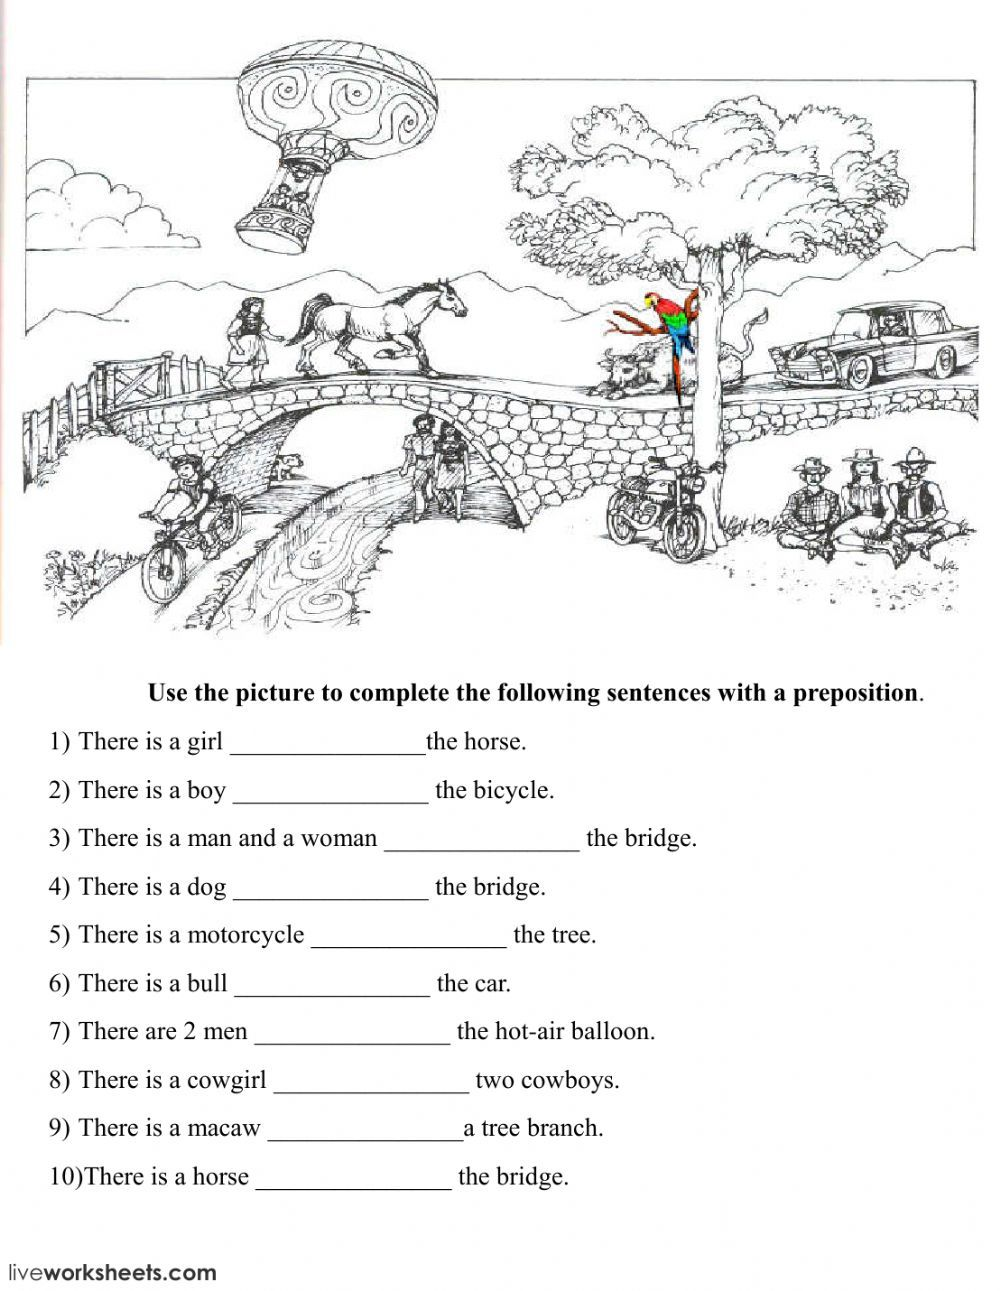 Prepositions of Place online exercise and pdf. You can do